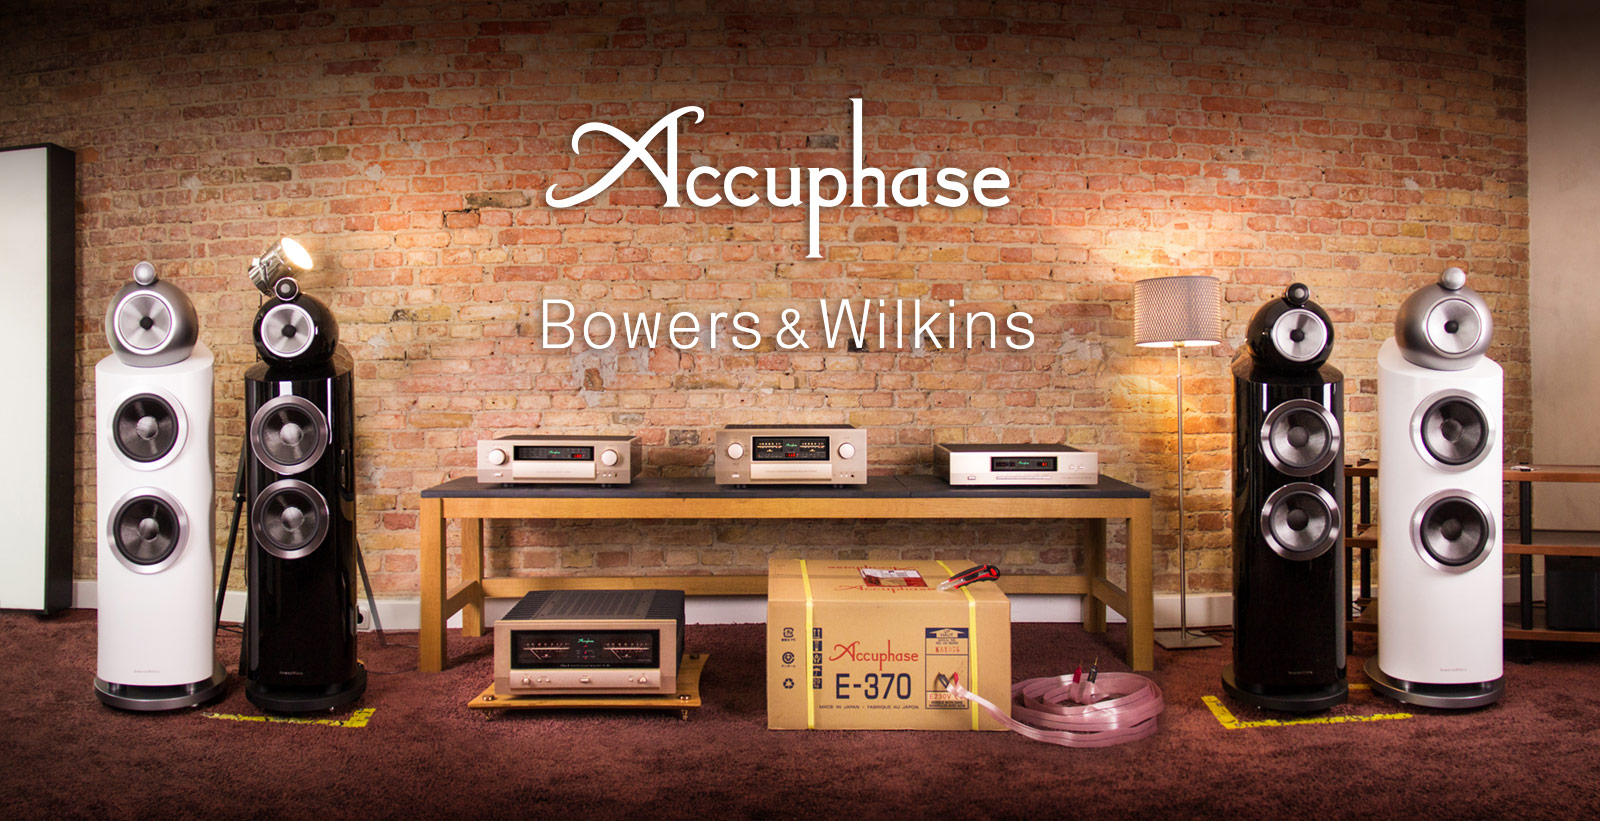 Accuphase Hausmesse Mit Bw 802 D3 11 12 März 2016 Hifi And